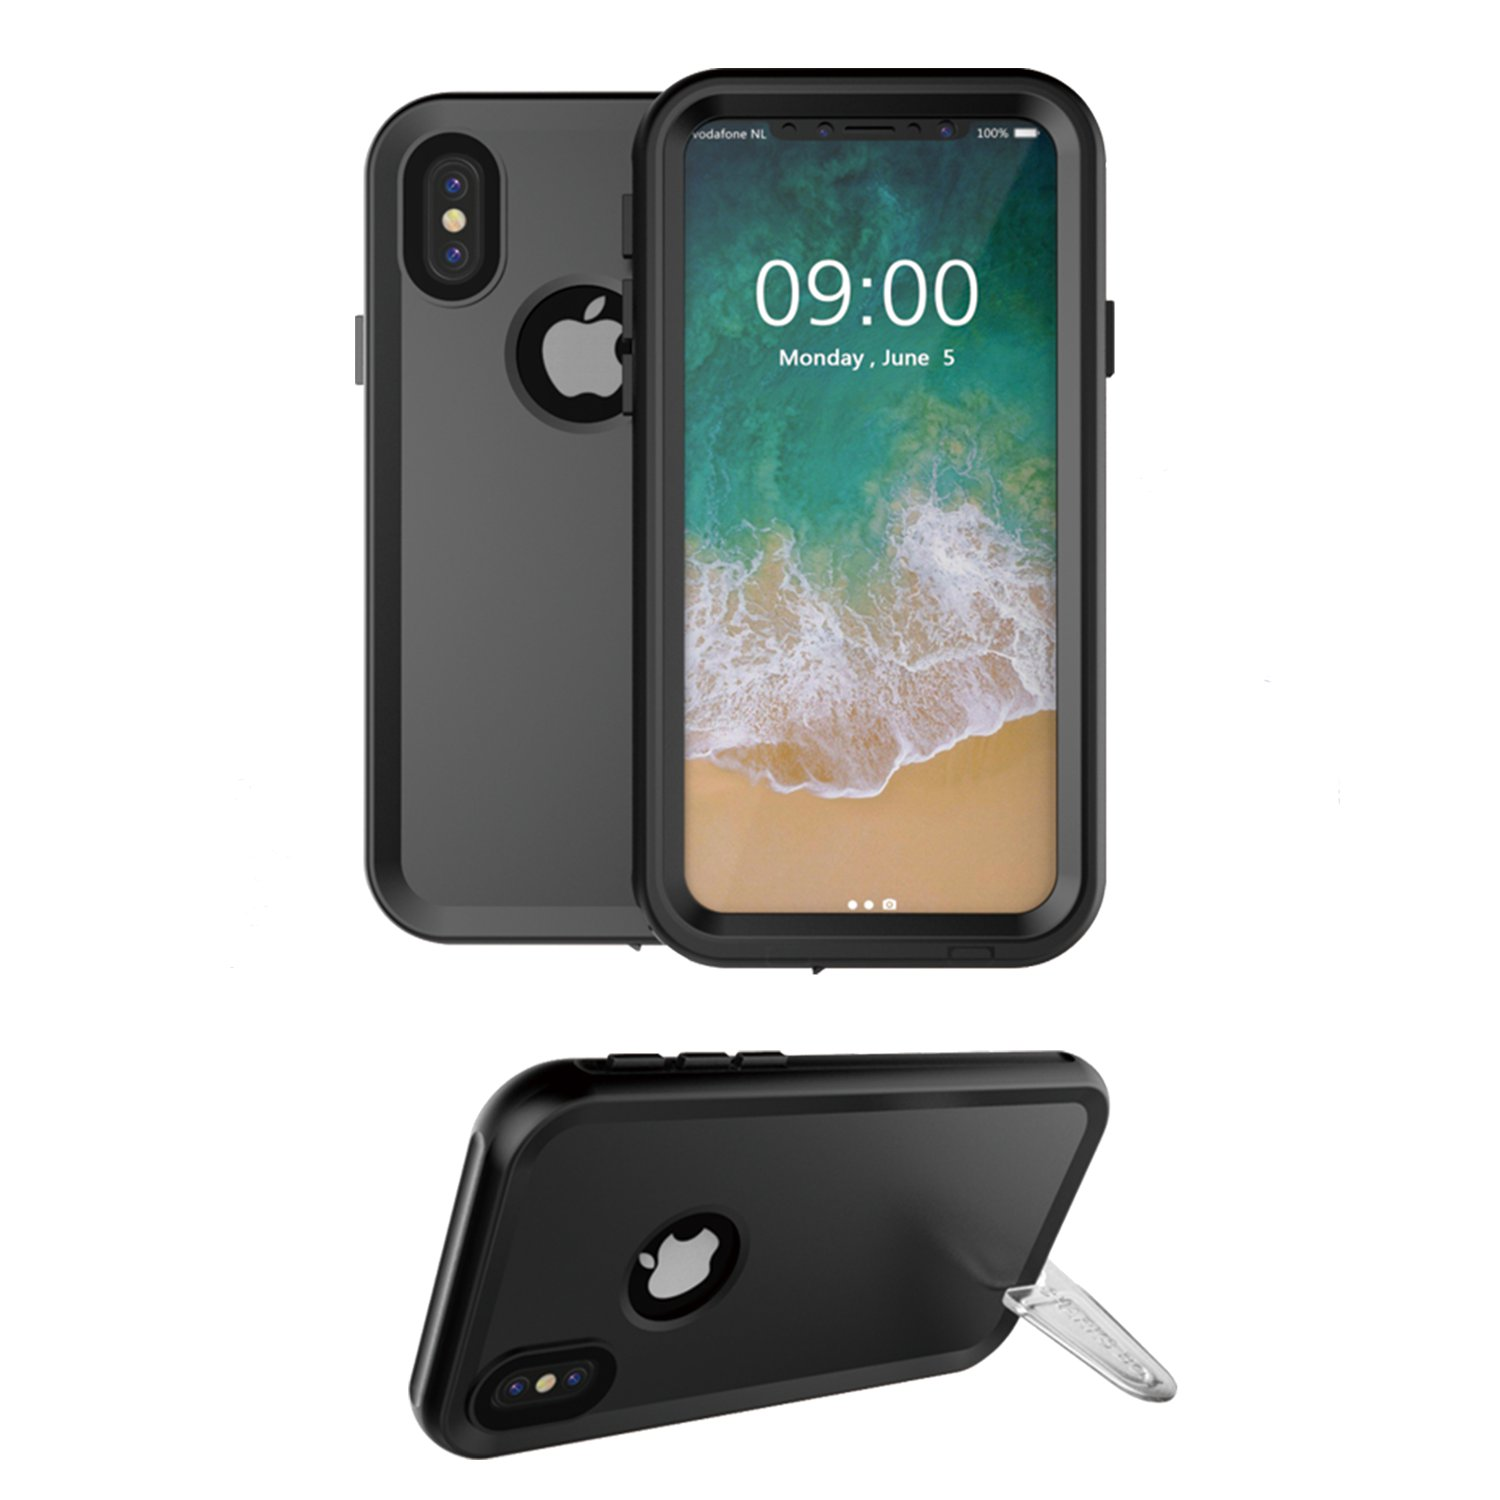 C-KU IP68 Waterproof Case With Kickstand For iPhone X U